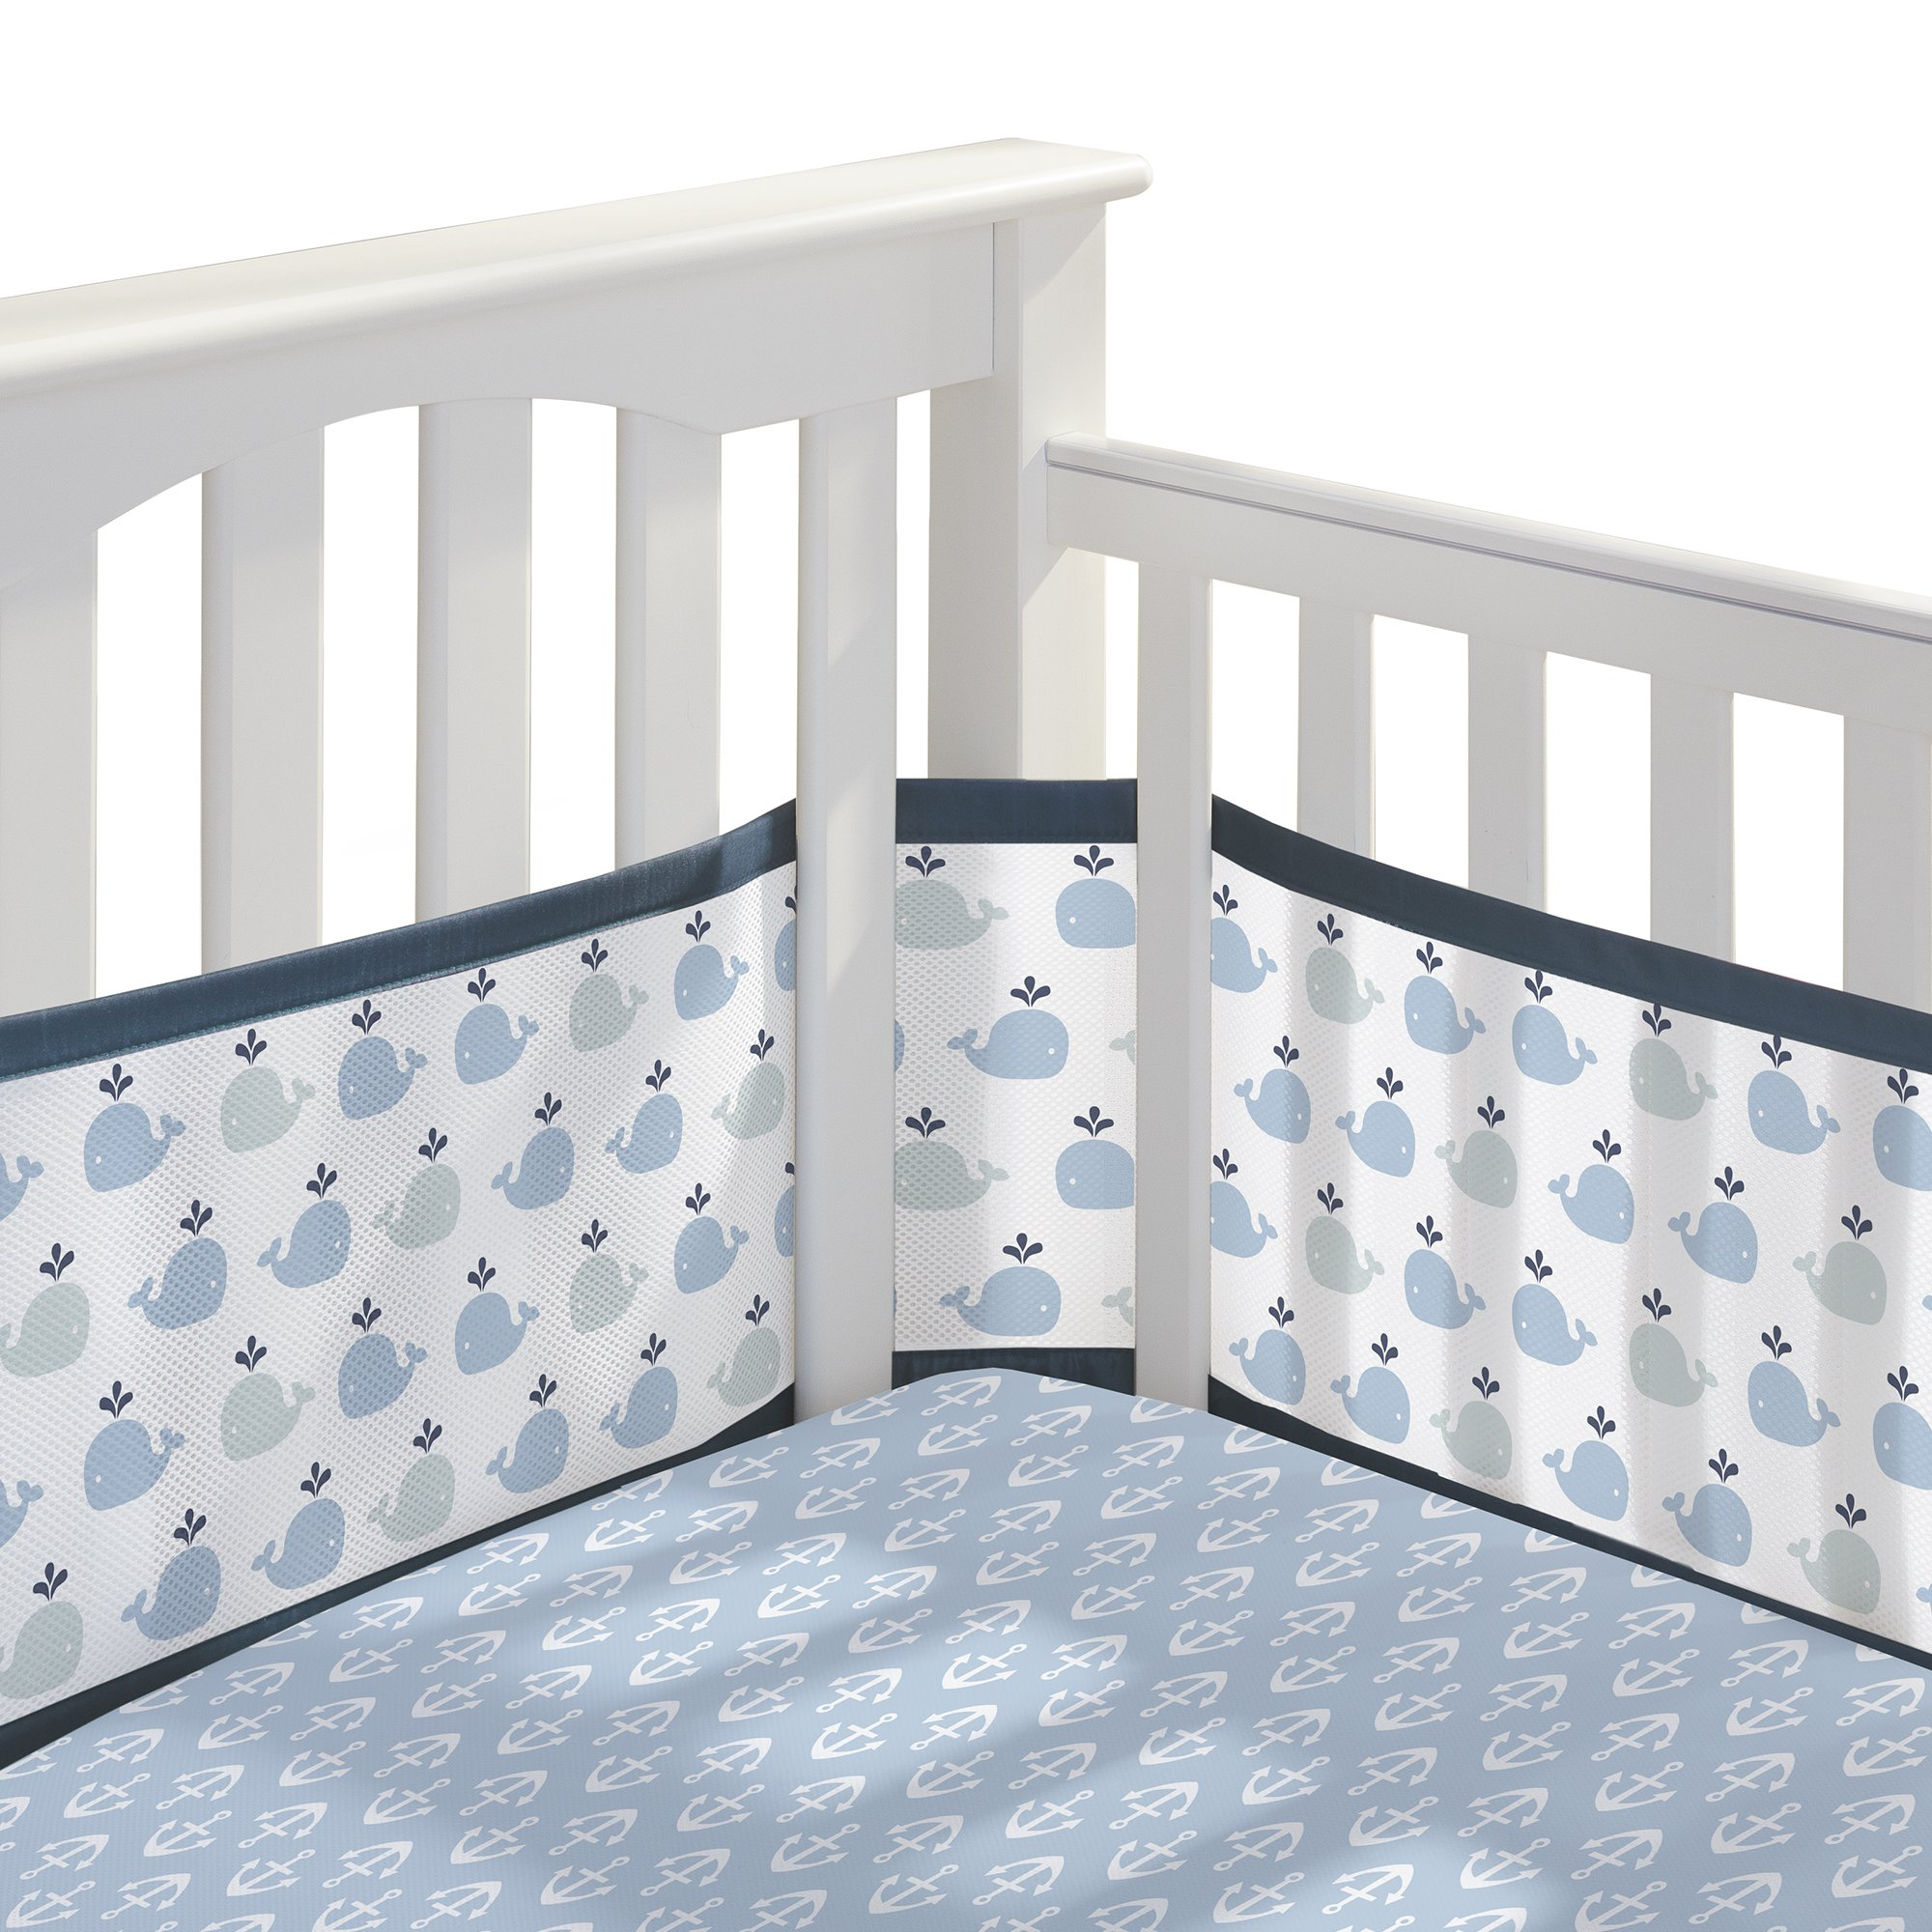 BreathableBaby | Classic Crib Bedding Set | Award Winning | Helps Prevent Arms and Legs from Getting Stuck Between Crib Slats | Independently Tested for Safety | 3 Piece | Little Whale Navy